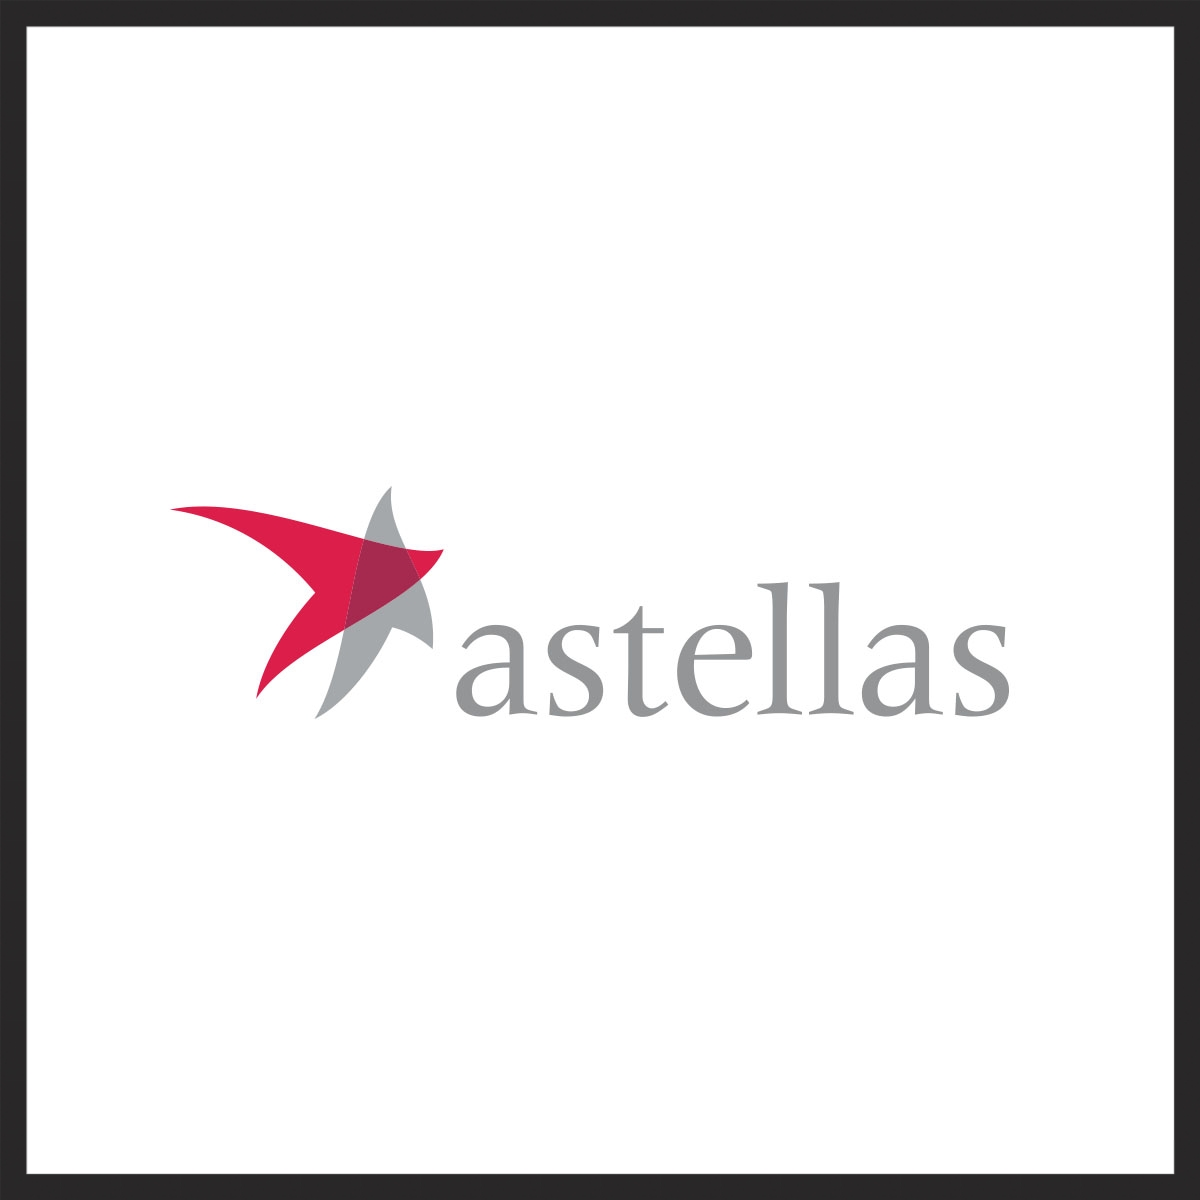 Astellas  Lifecycle management strategy for urology portfolio and consumer commercial launch of an overactive bladder medication.